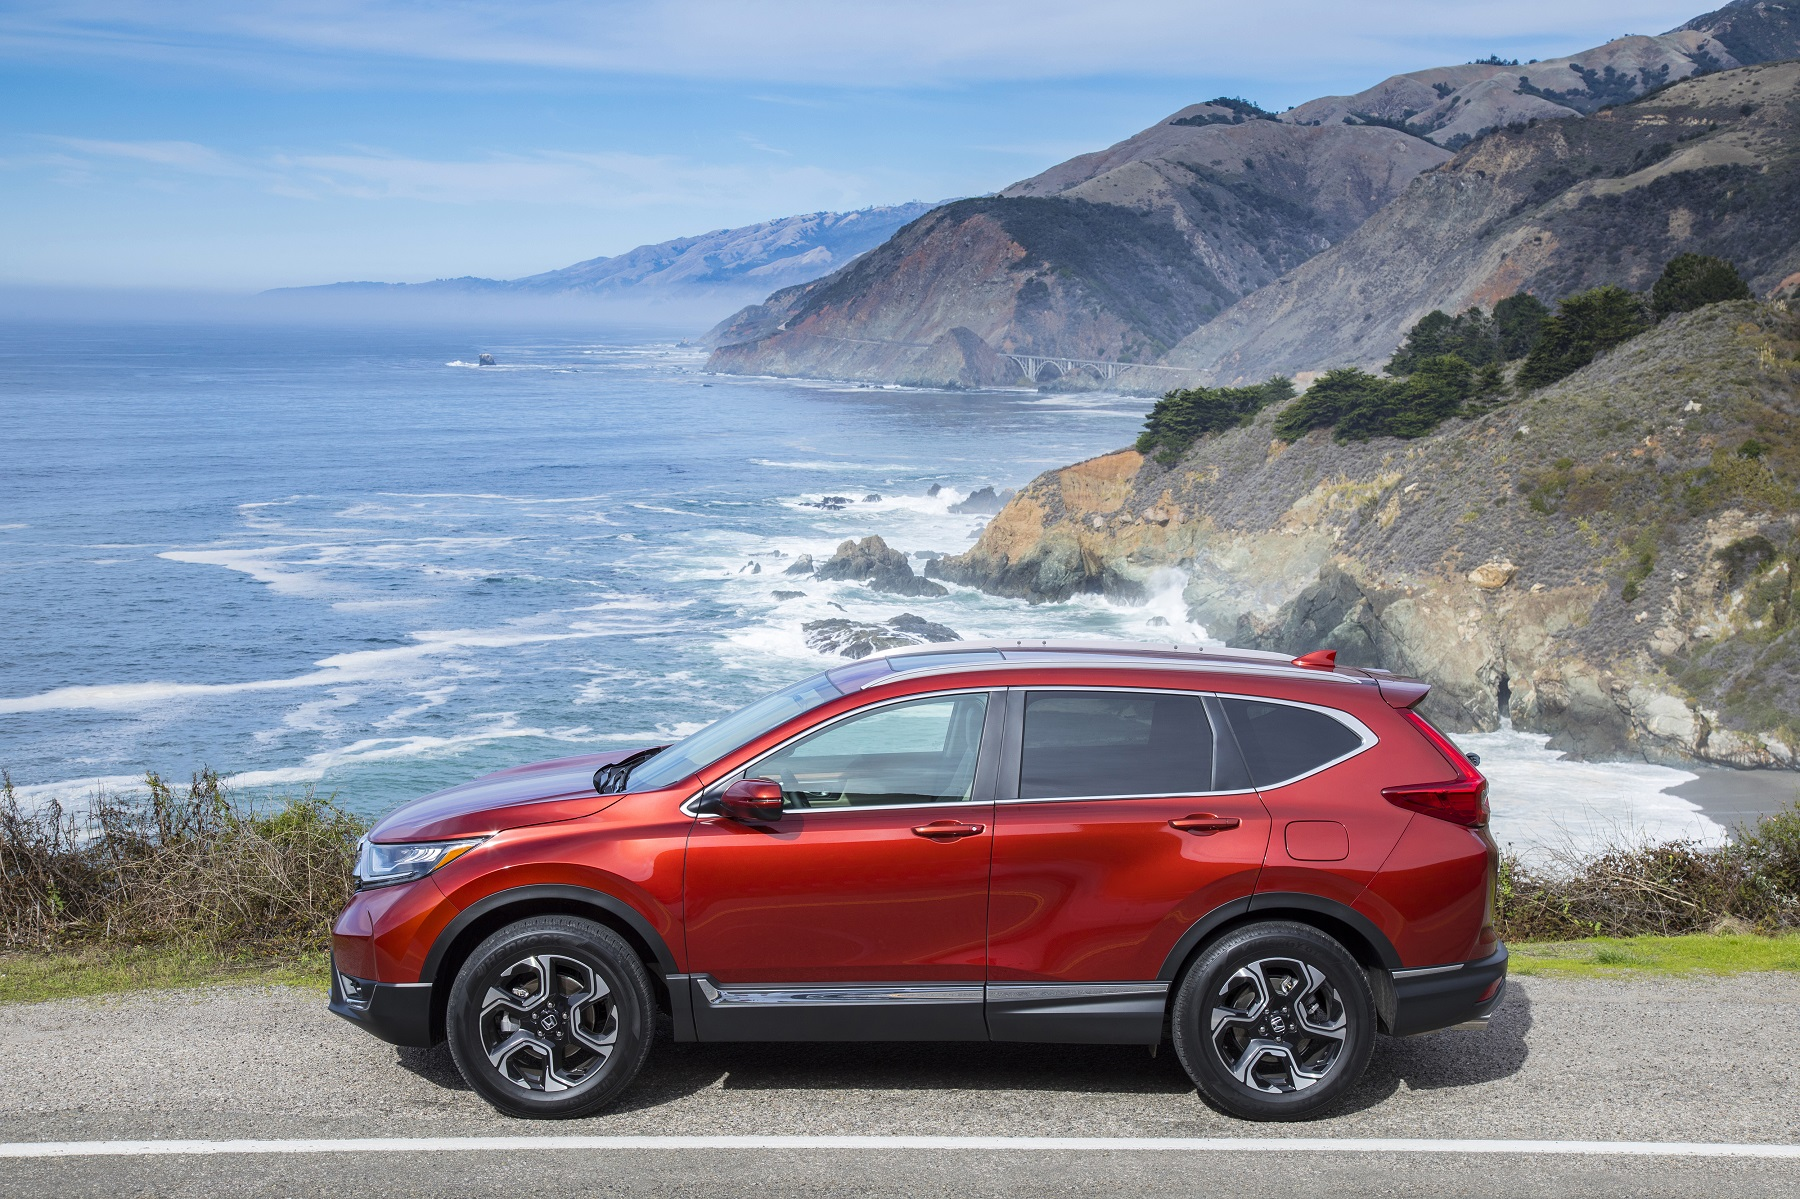 Honda CR-V gets complete redesign, more room for 2017